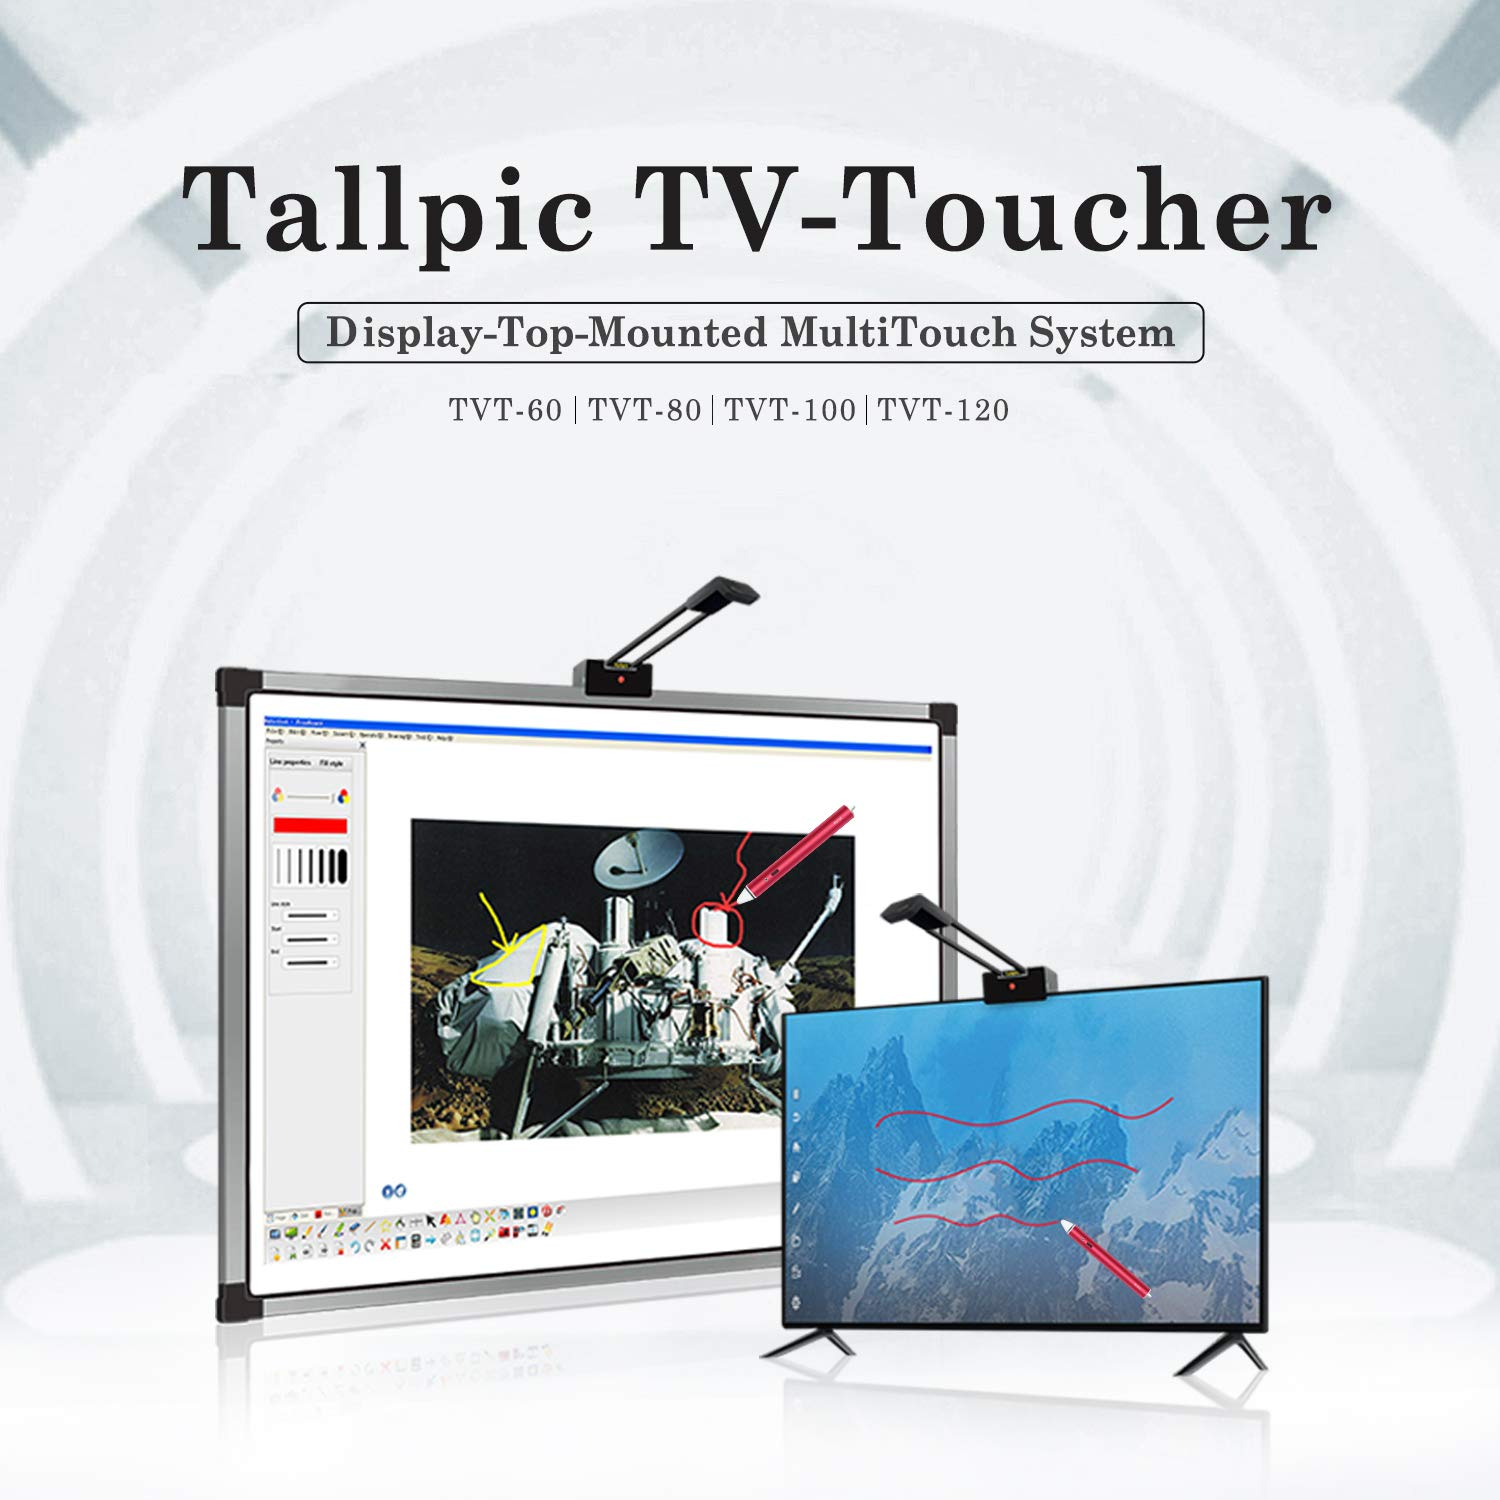 Tallpic Plug-n-Play TV-Toucher Turn 80'' TV into Interactive Touchscreen for Home and Office by Tallpic